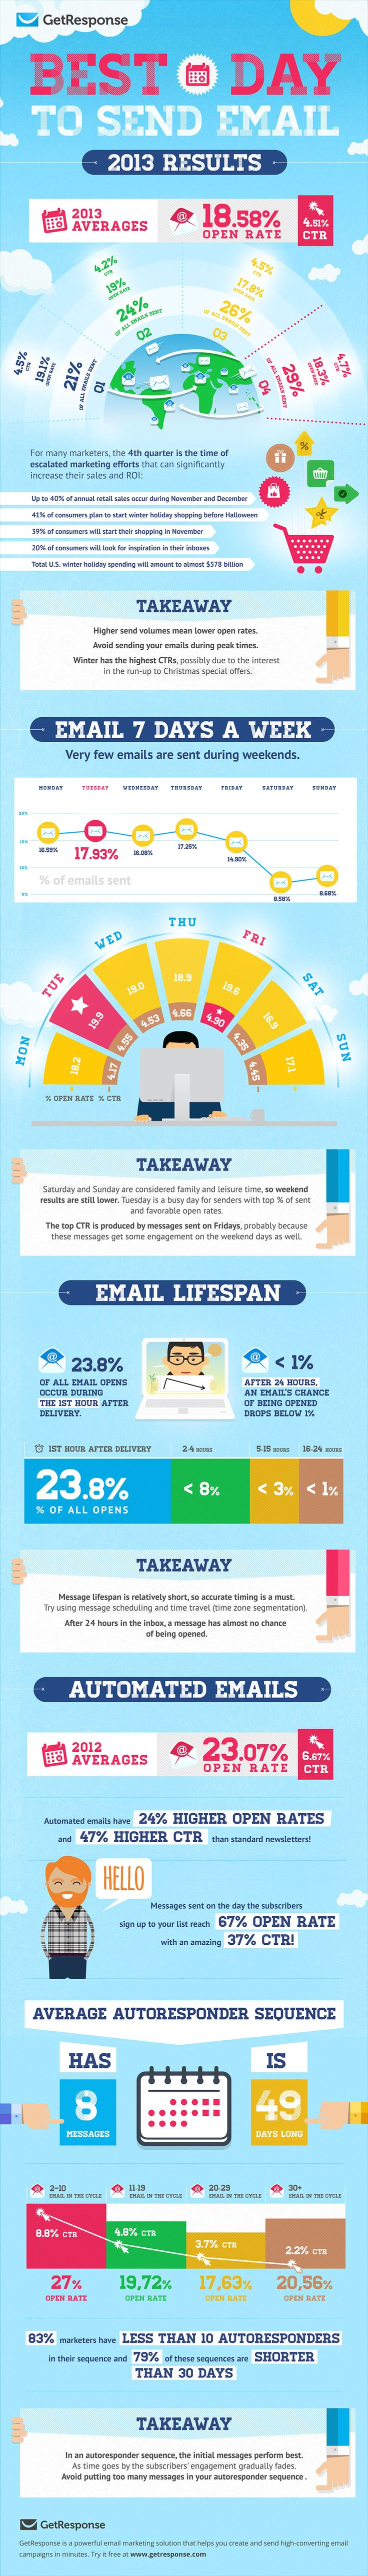 New Infographic: Best Day to Send Email 2013 - Email Marketing Tips - Blog GetResponse